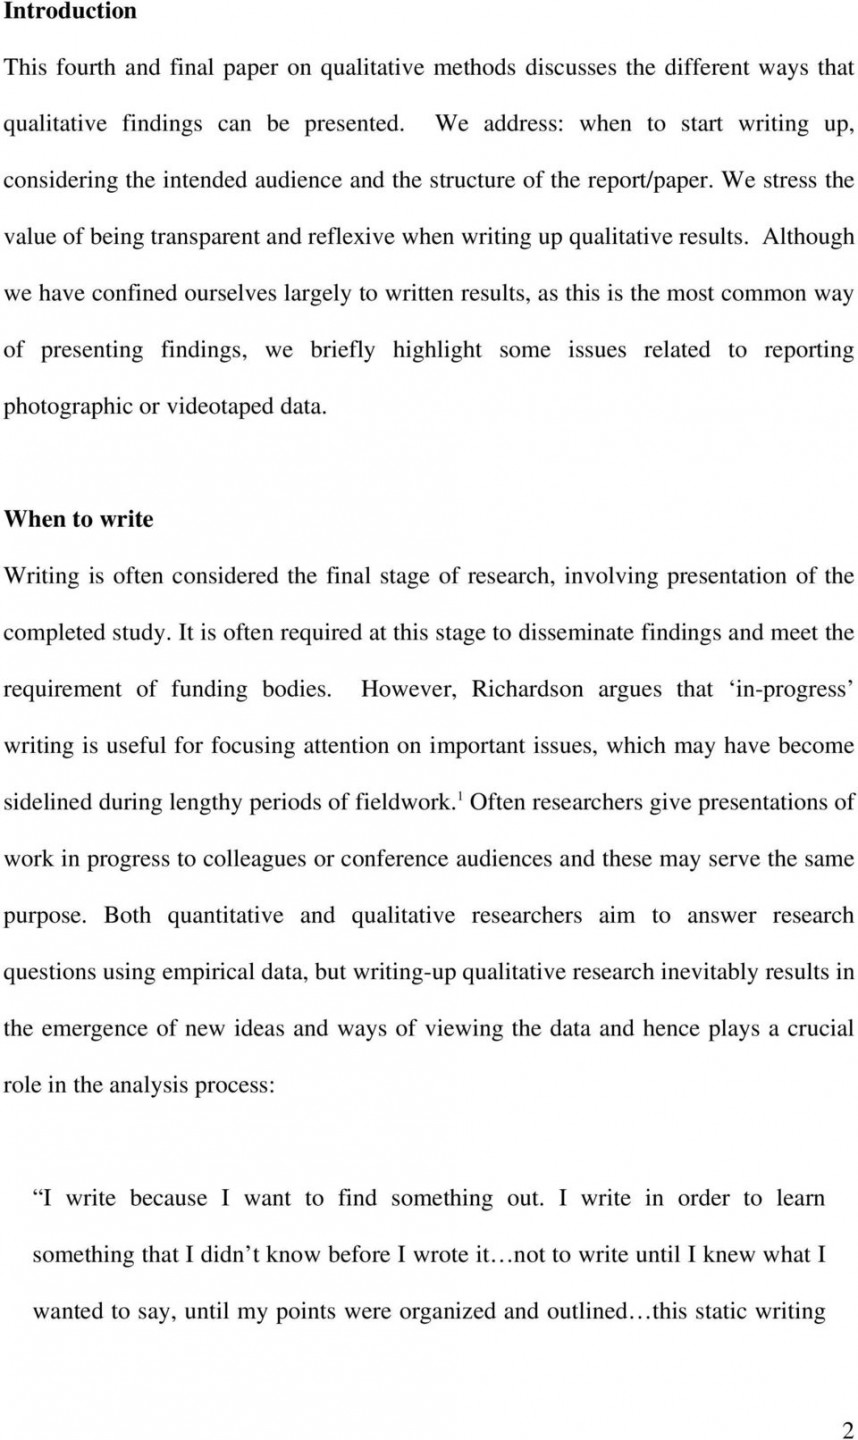 008 How To Write Up Results In Research Paper Page 2 Stupendous A